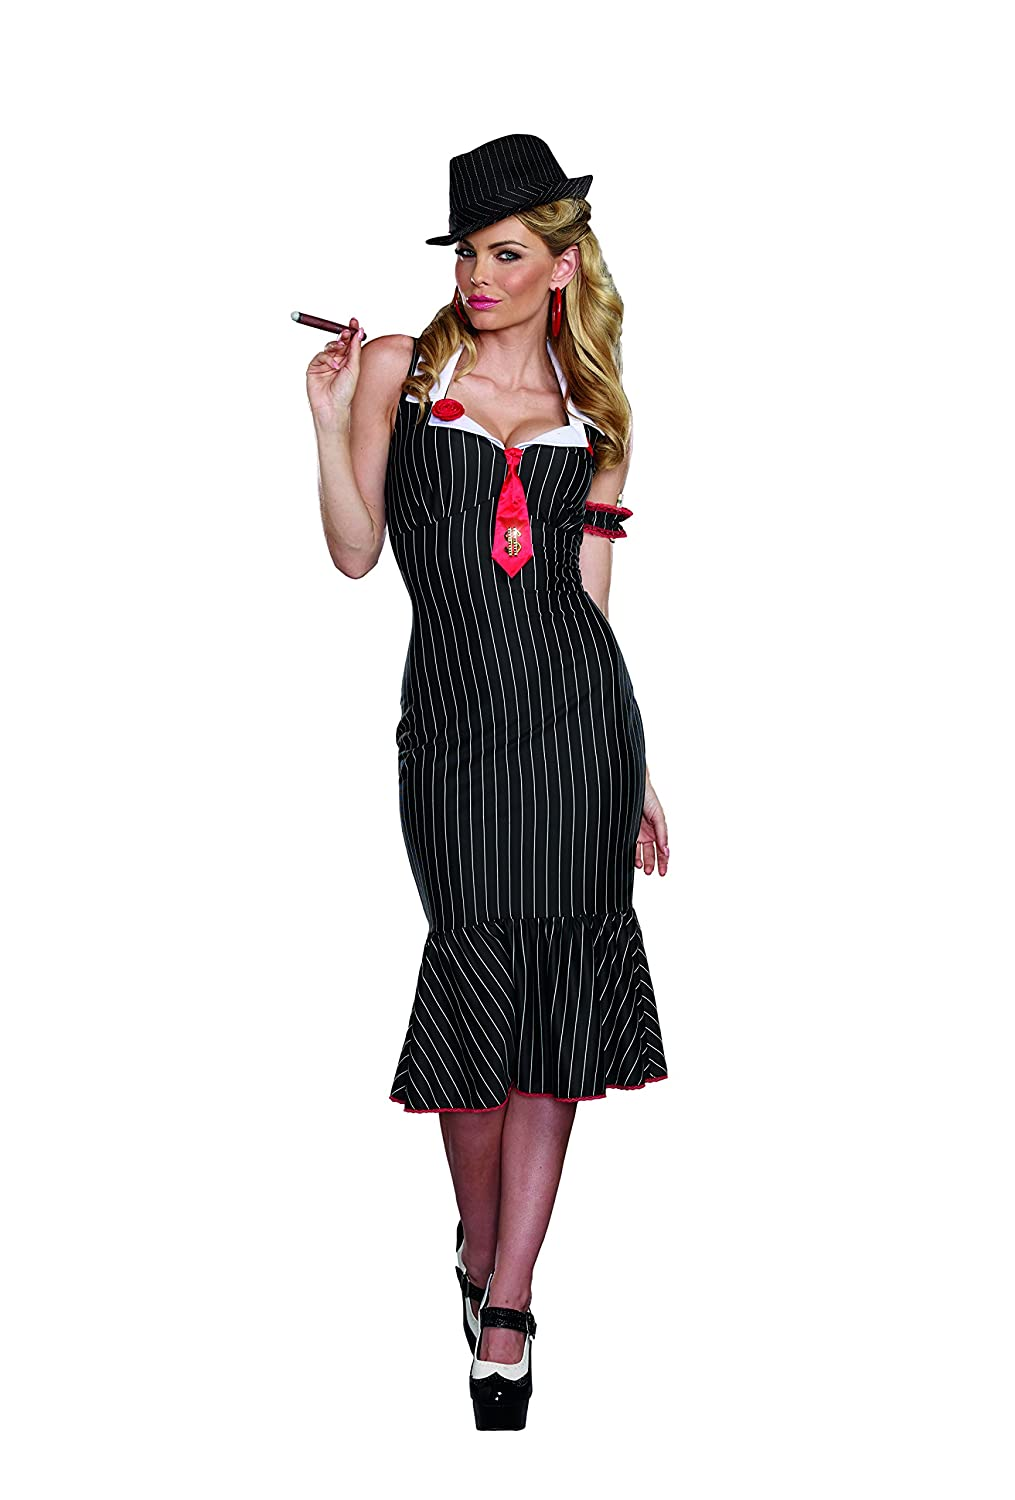 Gangster Costumes & Outfits | Women's and Men's Dreamgirl Womens Deadly Dames Pinstripe Gangster Costume $67.00 AT vintagedancer.com